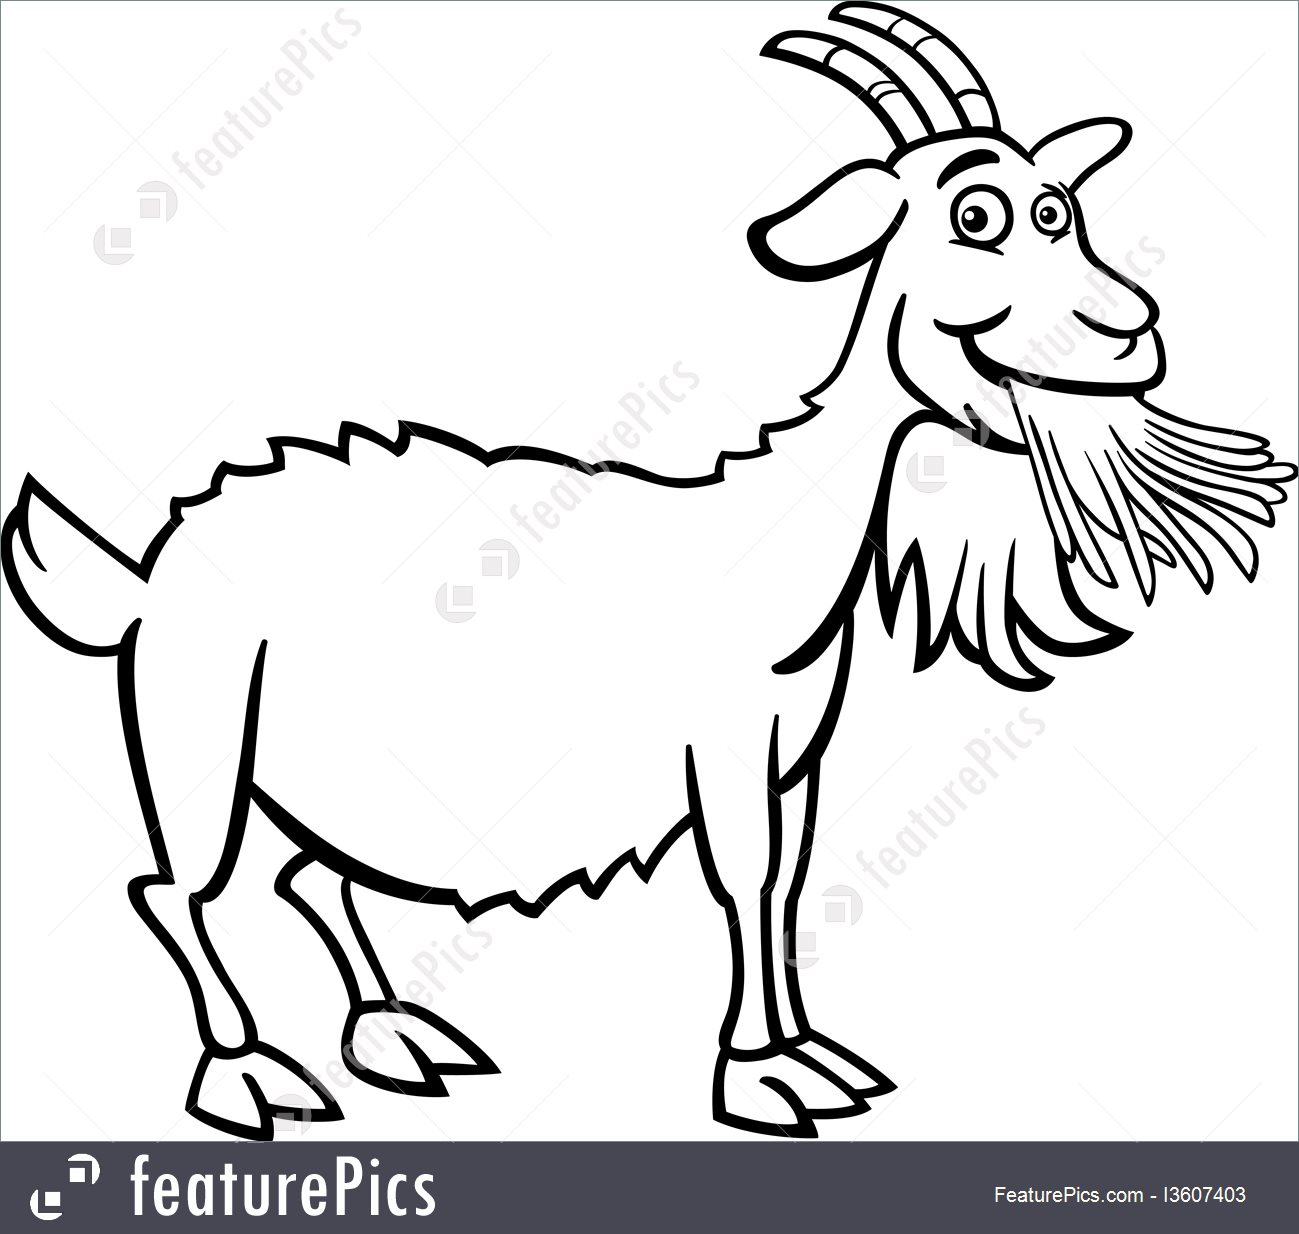 1299x1234 Domestic Animals Farm Goat Cartoon For Coloring Book